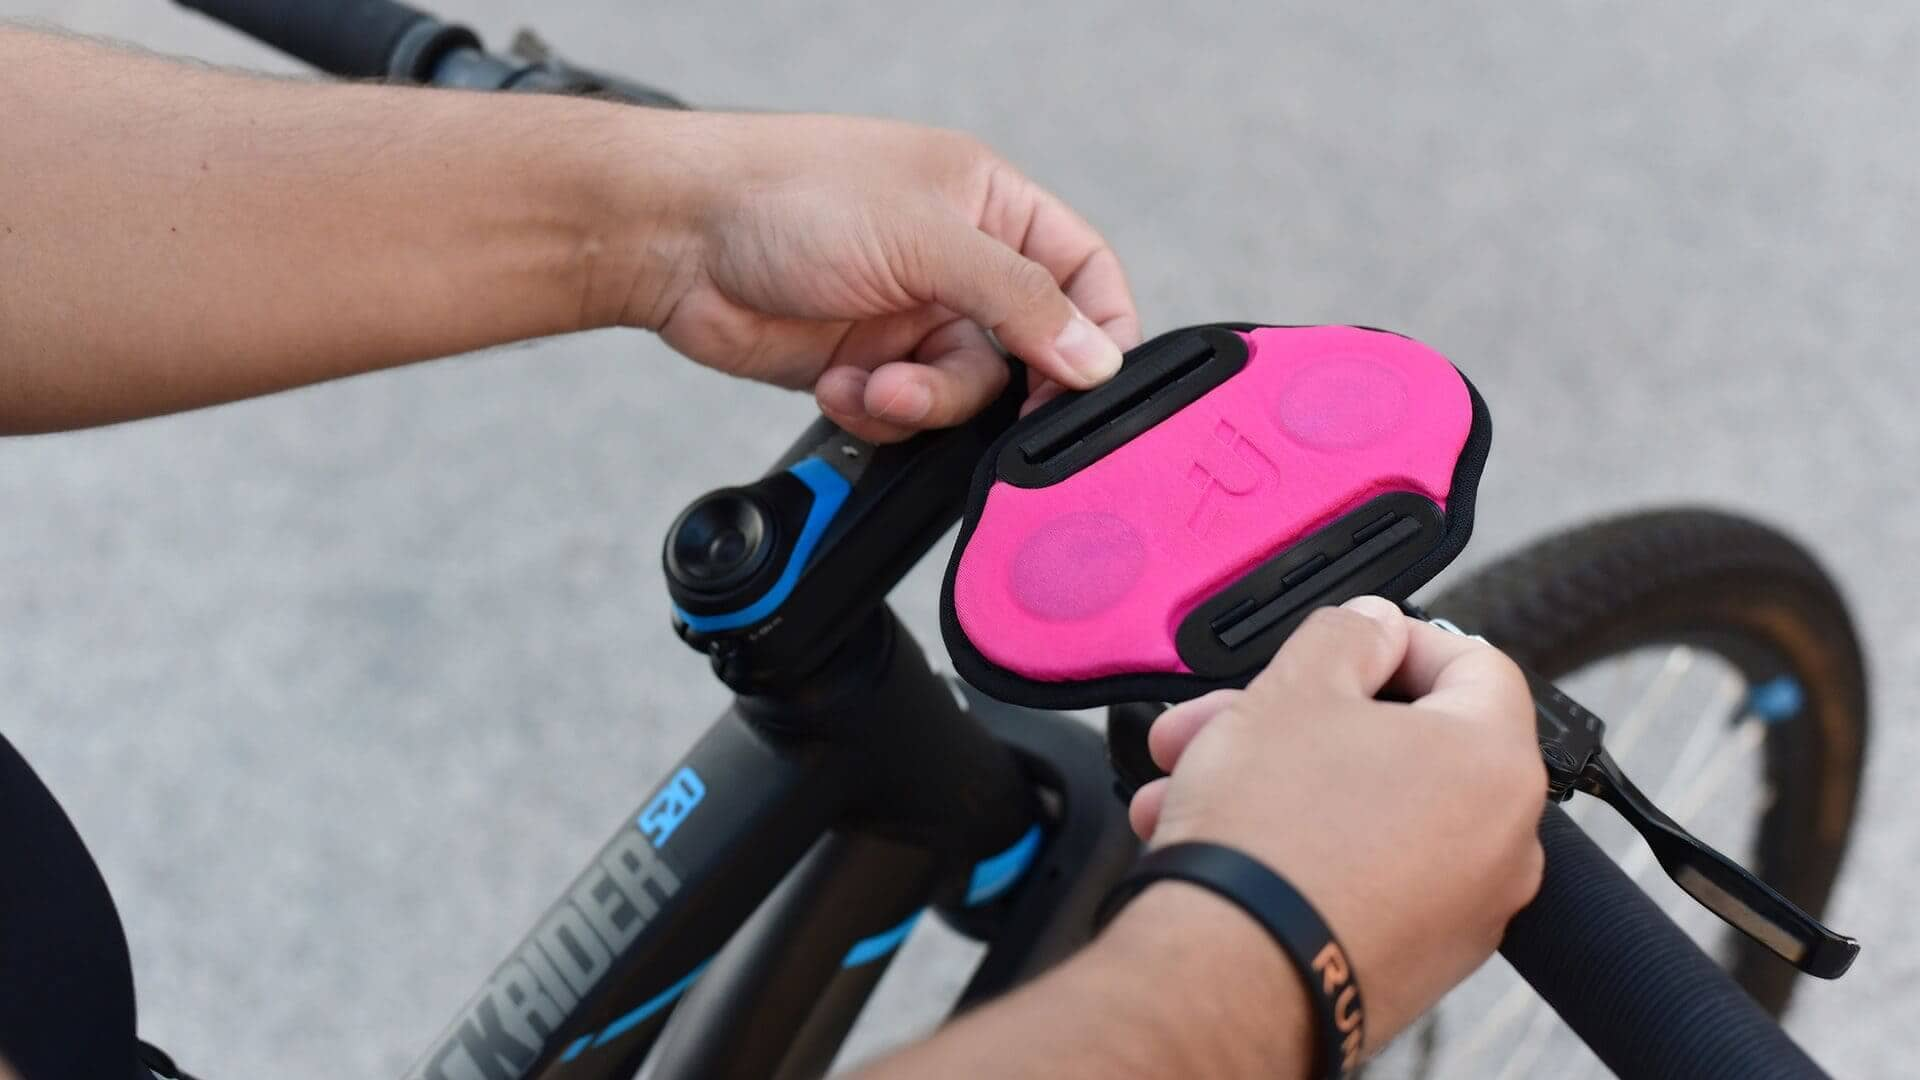 A new bike mount for all cycling essentials: magnetic smartphone holder, action camera and light holder